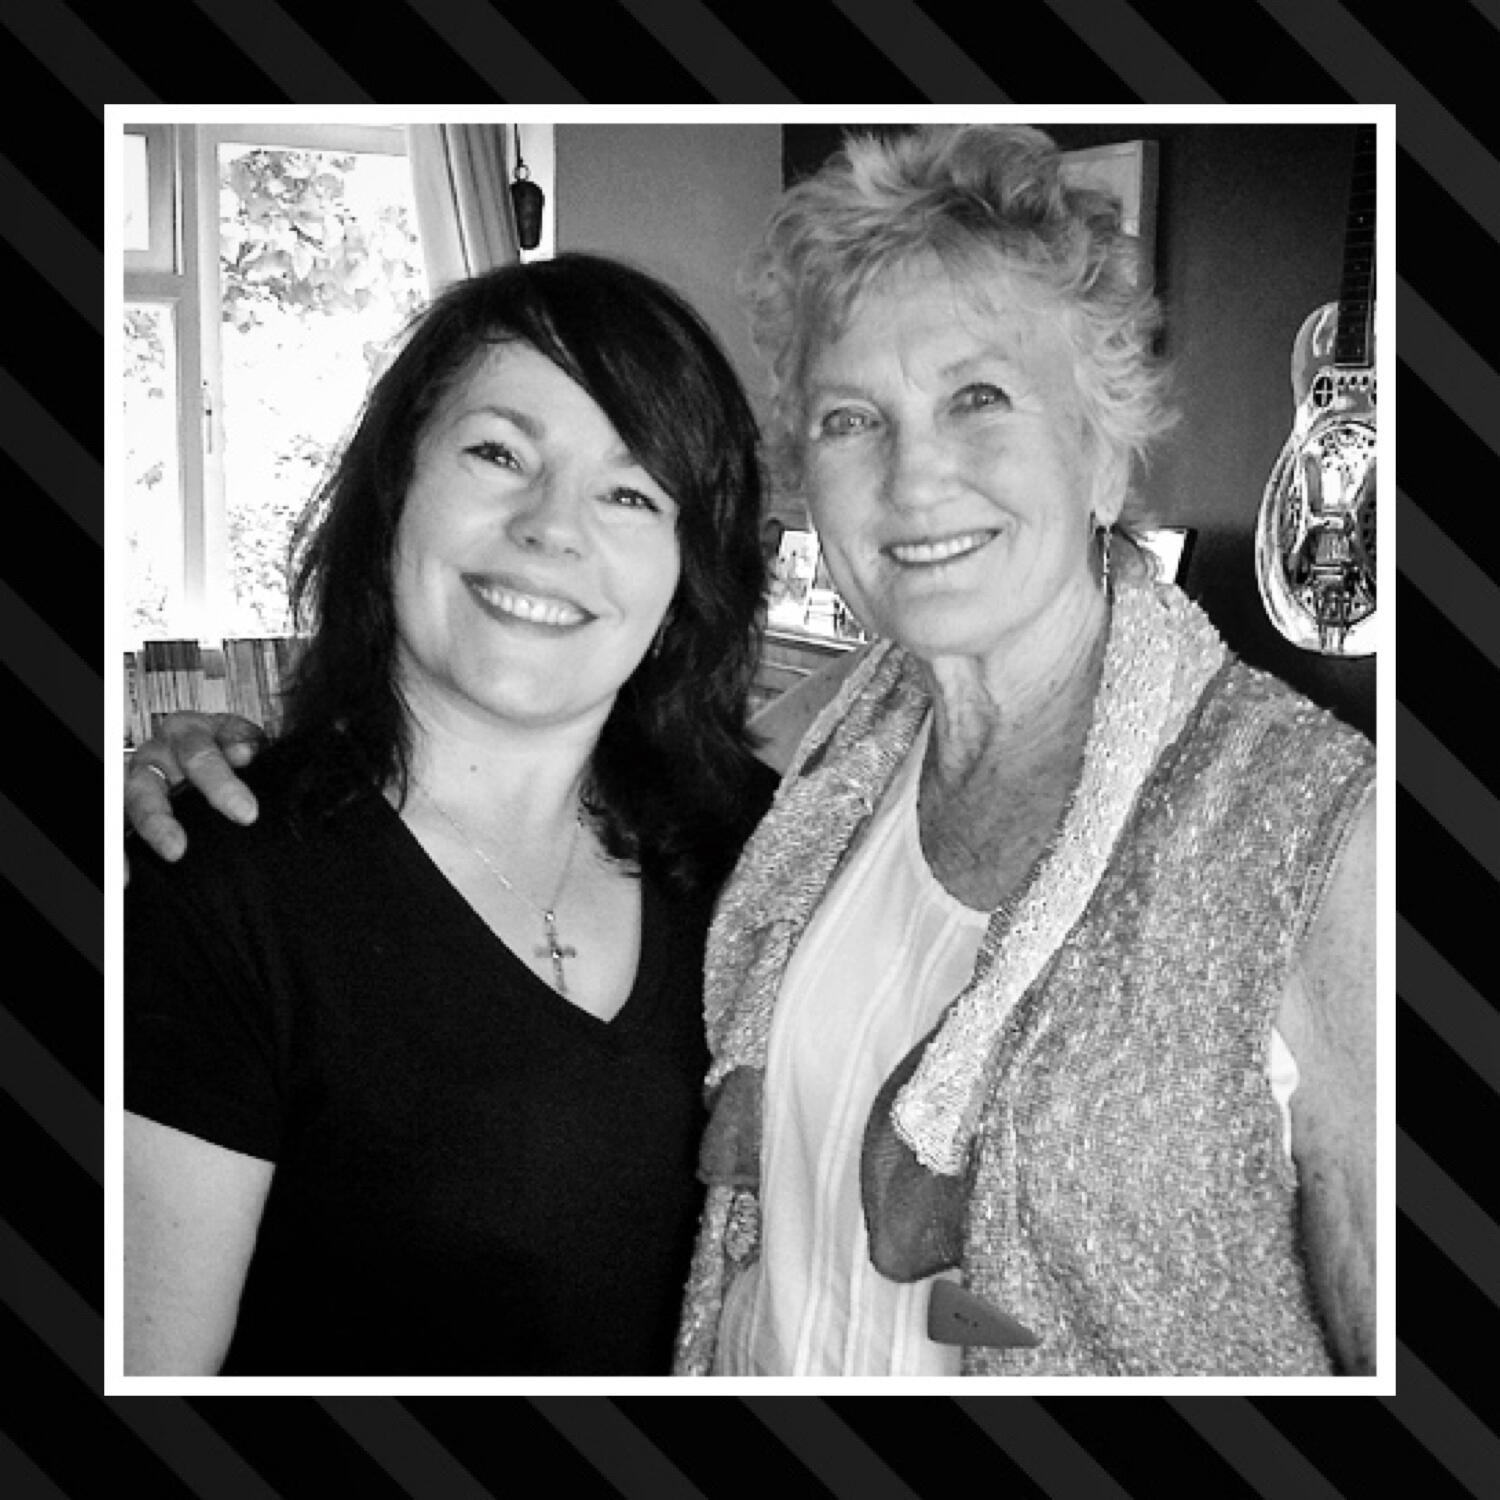 62: The one with Peggy Seeger Image